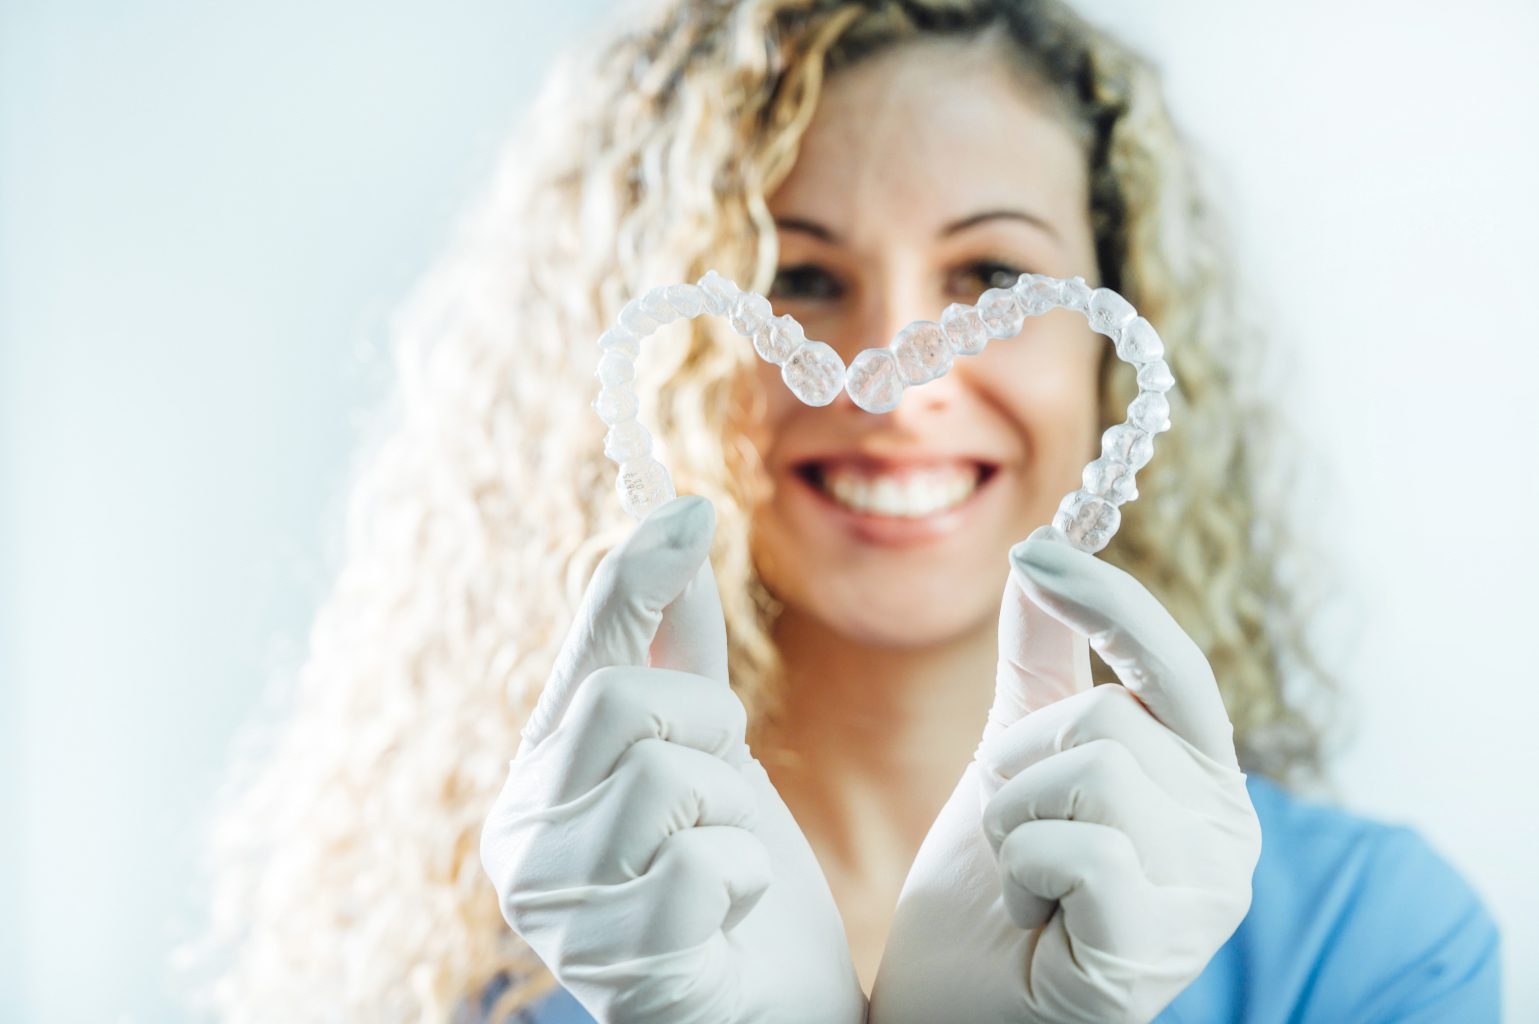 Female Doctor Holding Two Transparent Heart Shaped Dental Aligners